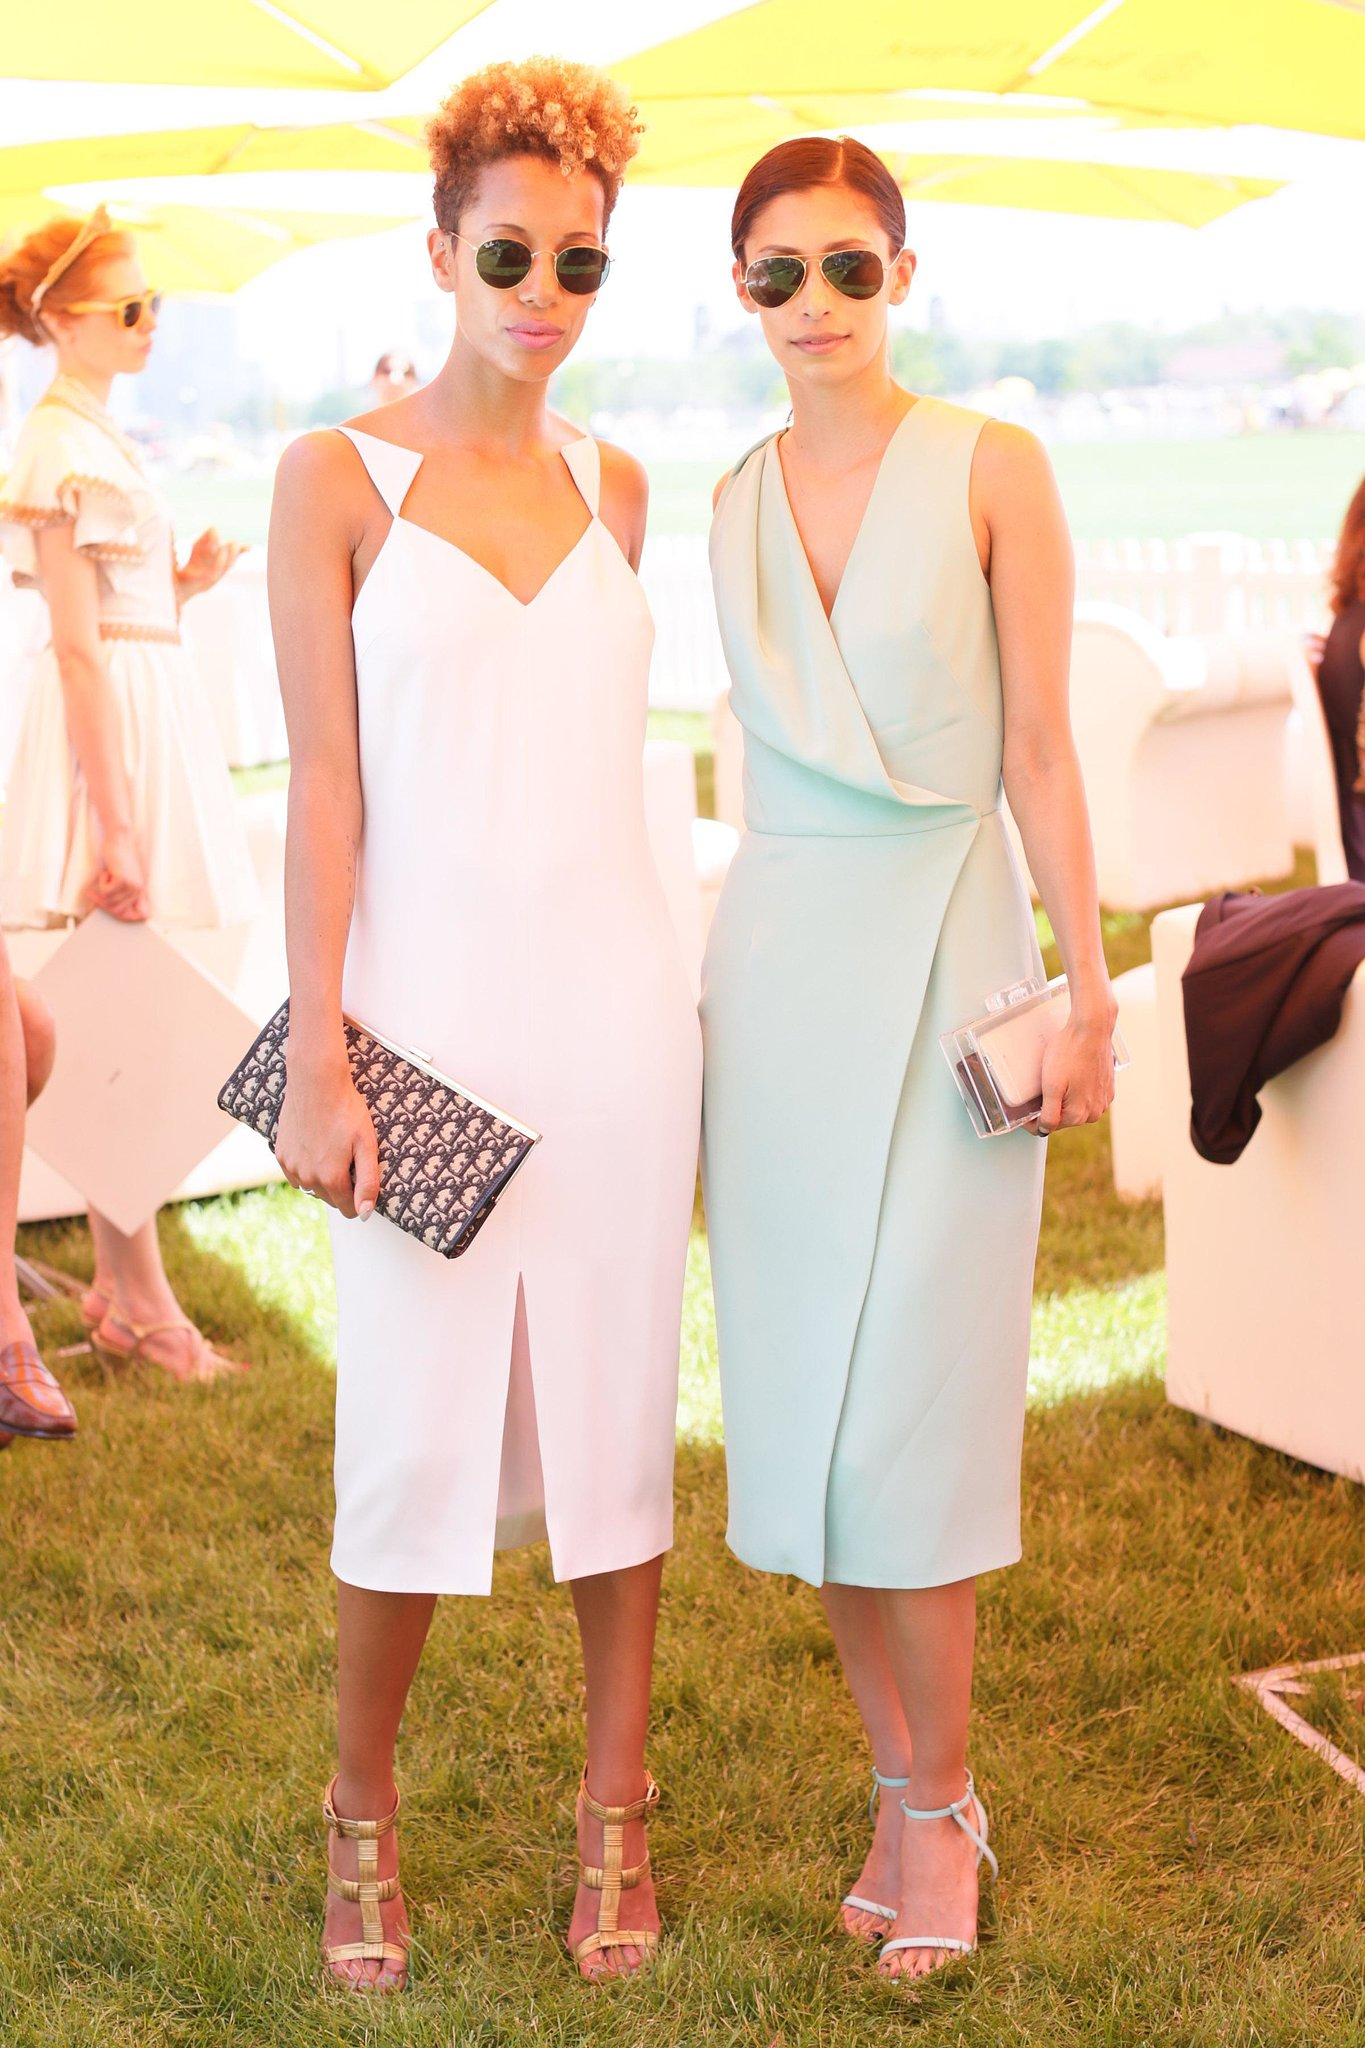 Cushnie et Ochs designer duo Carly Cushnie and Michelle Ochs at the sixth annual Veuve Clicquot Polo Classic in Jersey City, NJ. Source: David X Prutting/BFAnyc.com